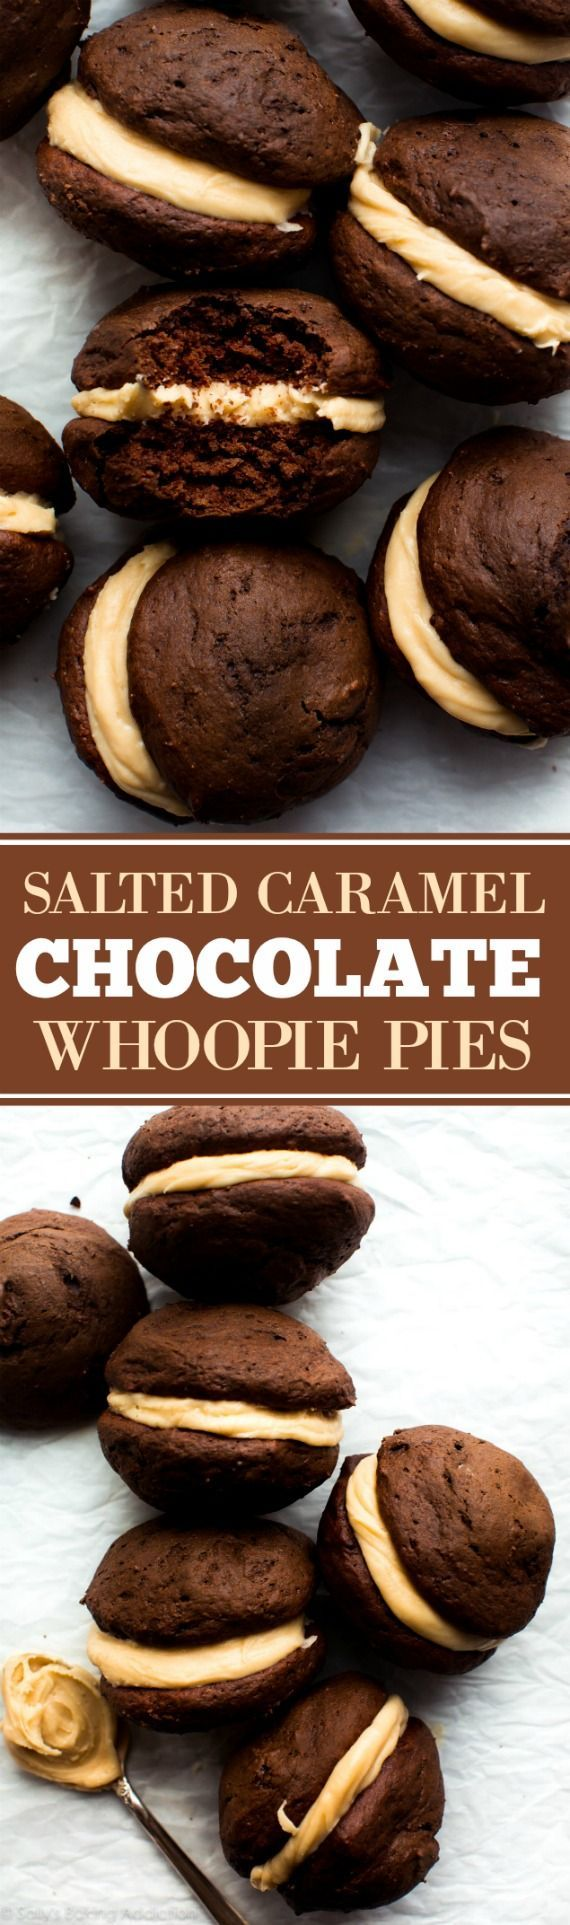 Soft, moist, and super EASY chocolate whoopie pies filled with salted caramel frosting! Dessert cookie recipe on sallysbakingaddiction.com